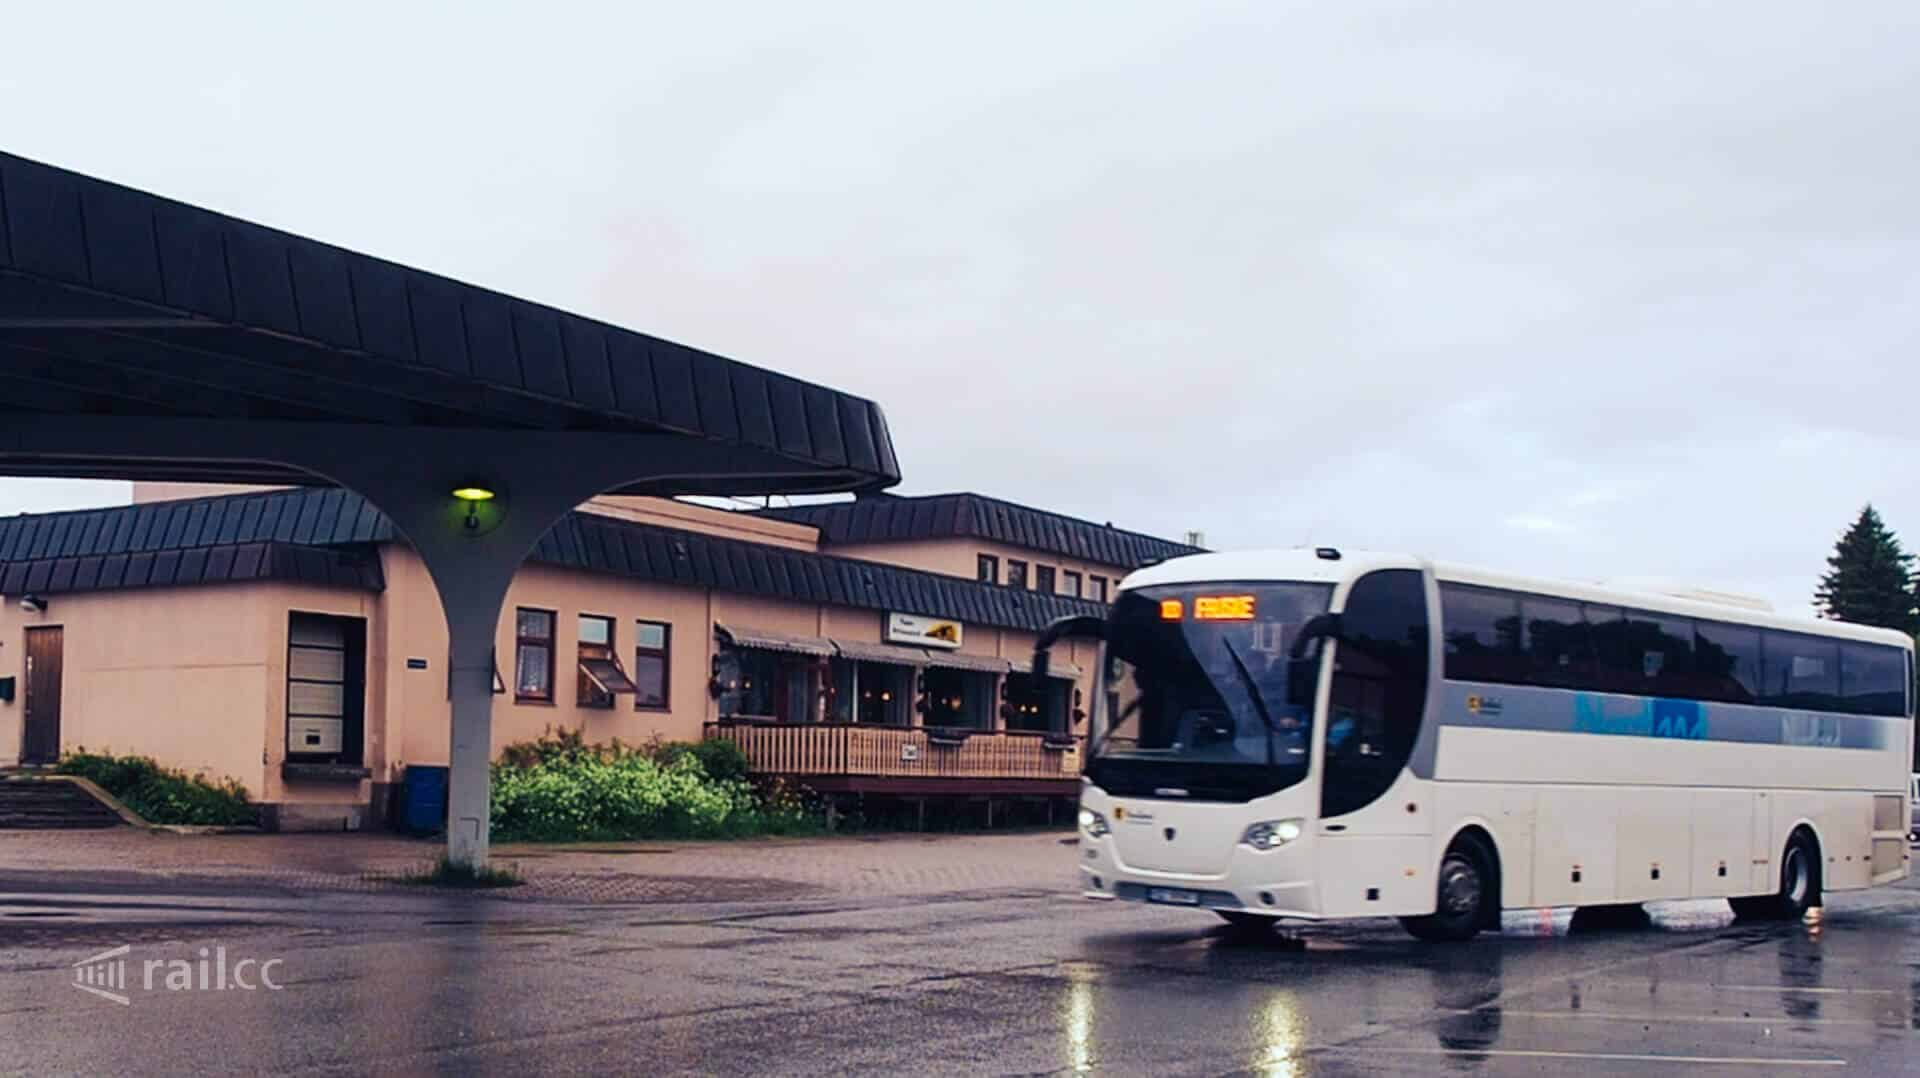 The bus from Narvik at Fauske train station.